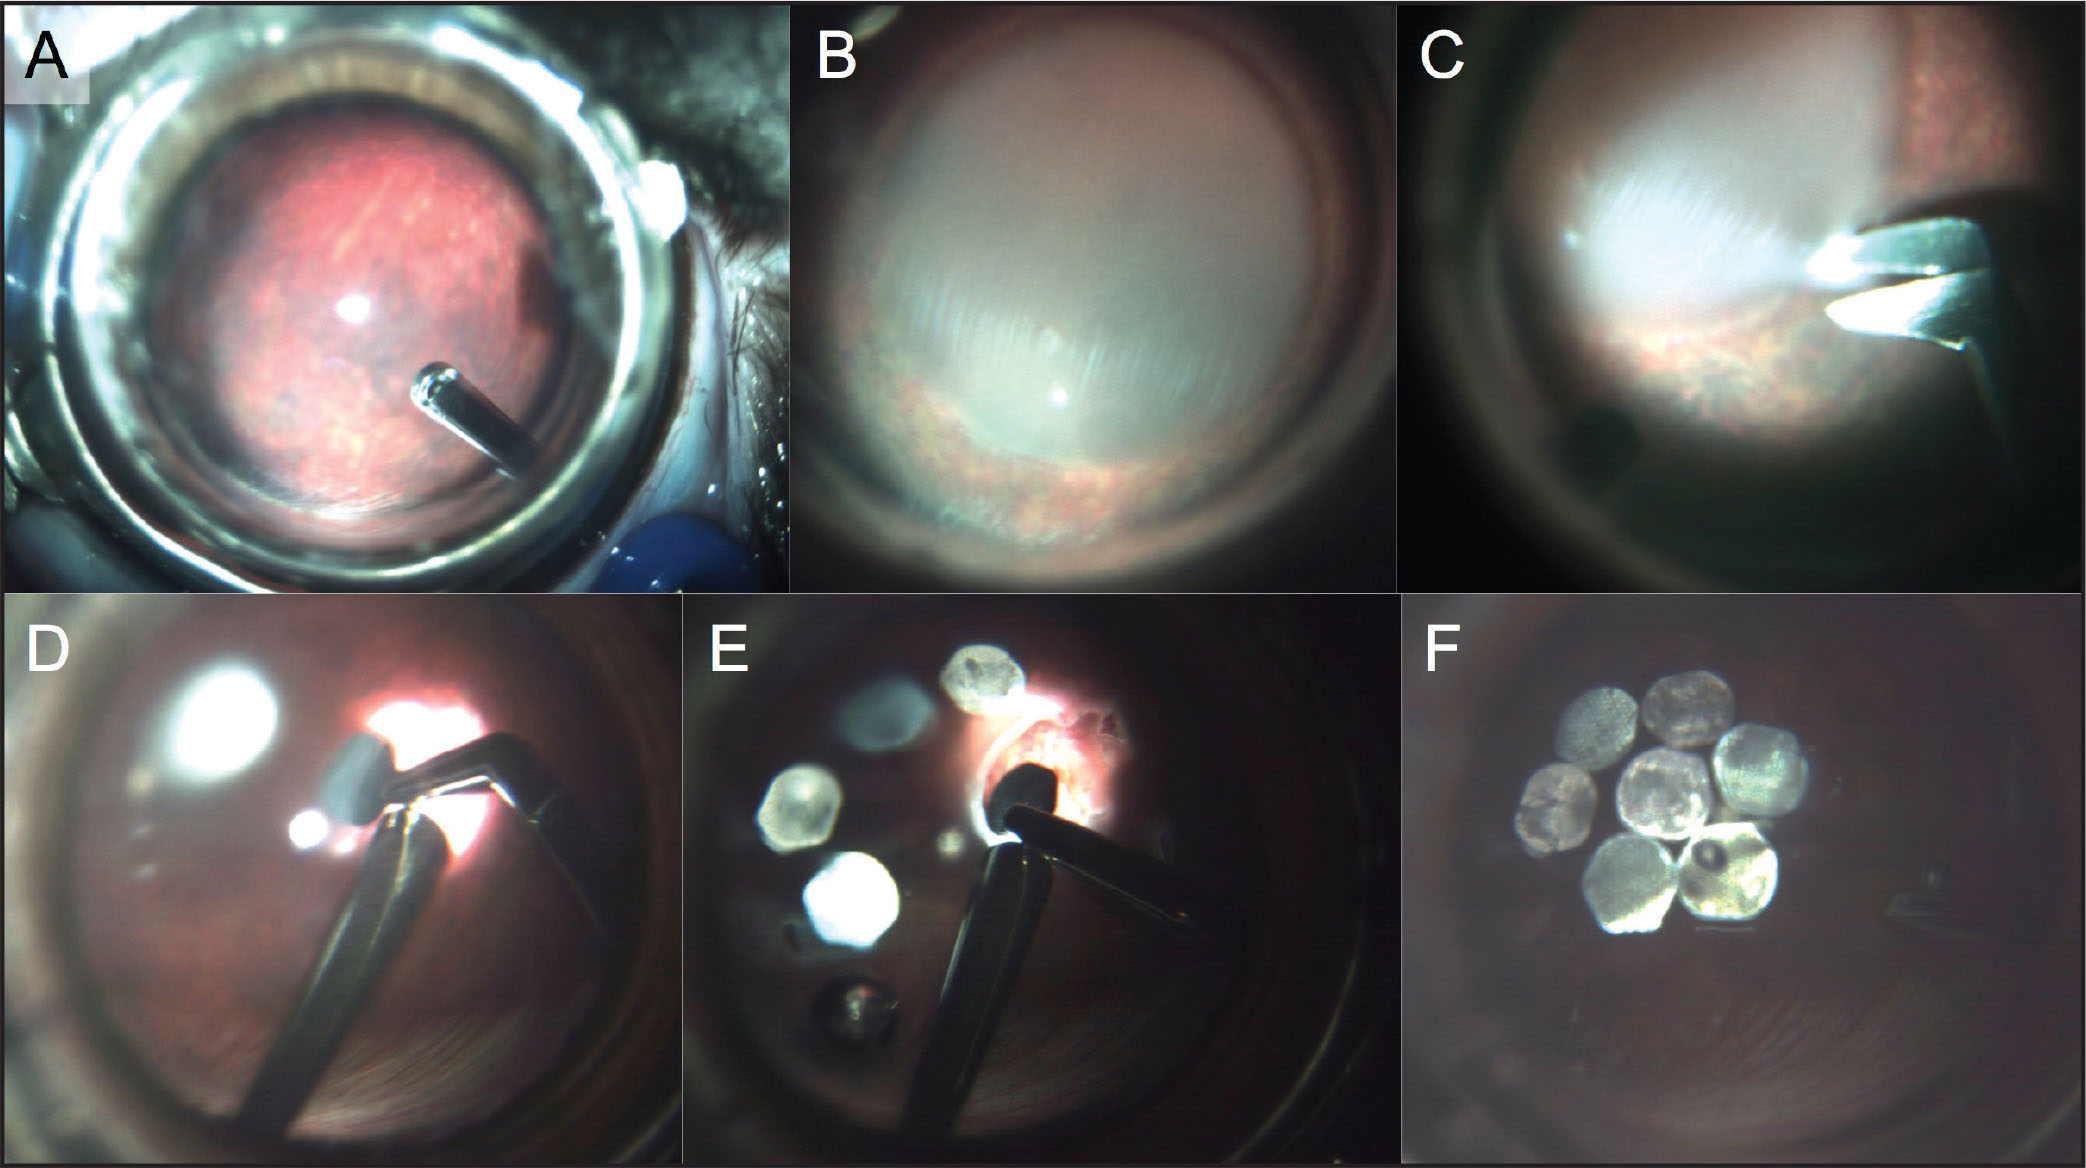 The surgical procedure. Vitrectomy (A) is followed by retinal detachment with fluid injection (B). A small (1.5 mm) retinotomy (C) allows insertion of the modules in subretinal space (D–E). Retina is reattached (F) after injection of perfluorocarbon.